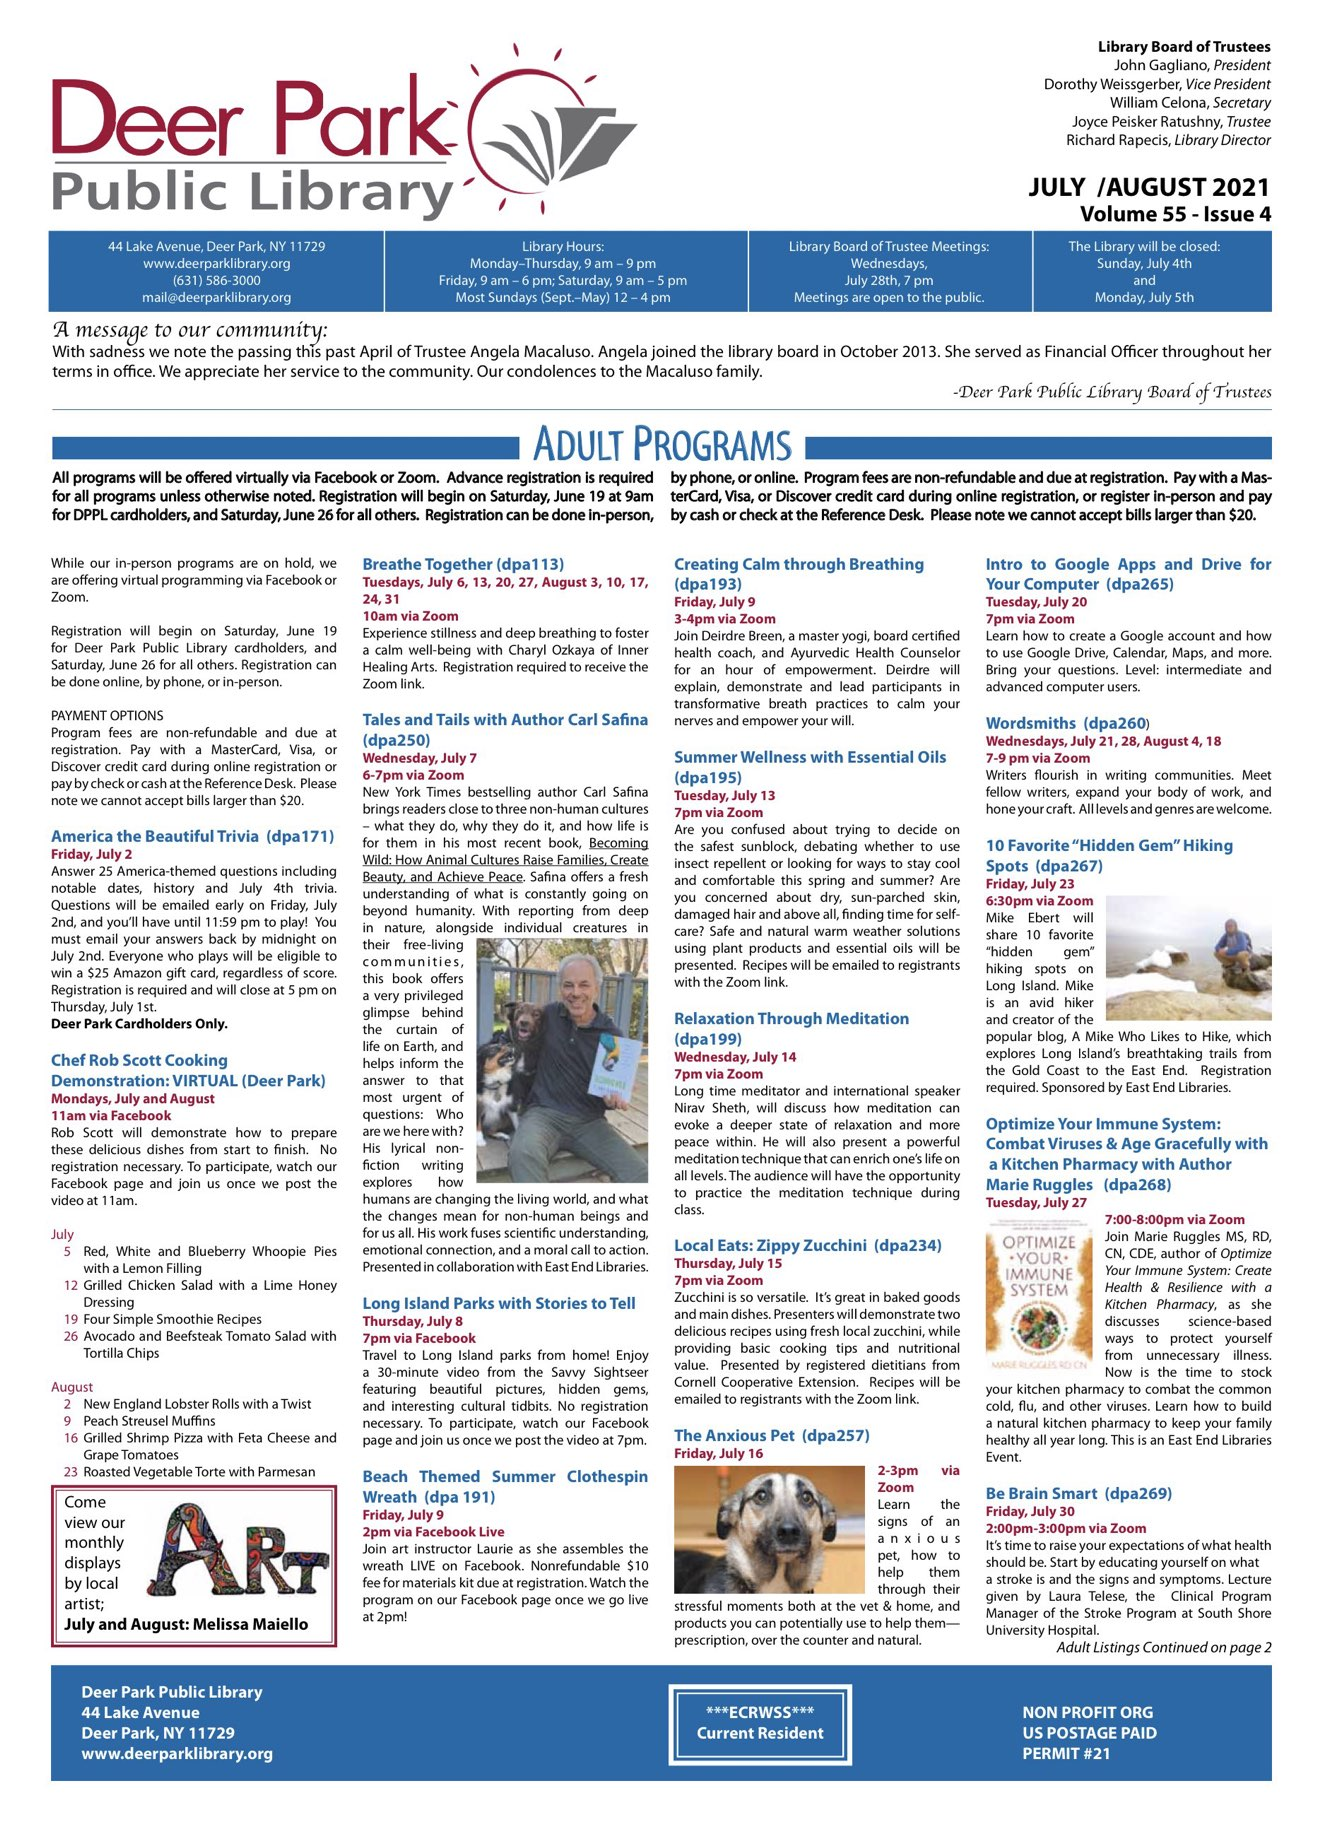 2021 July-August Newsletter 1st Page Image